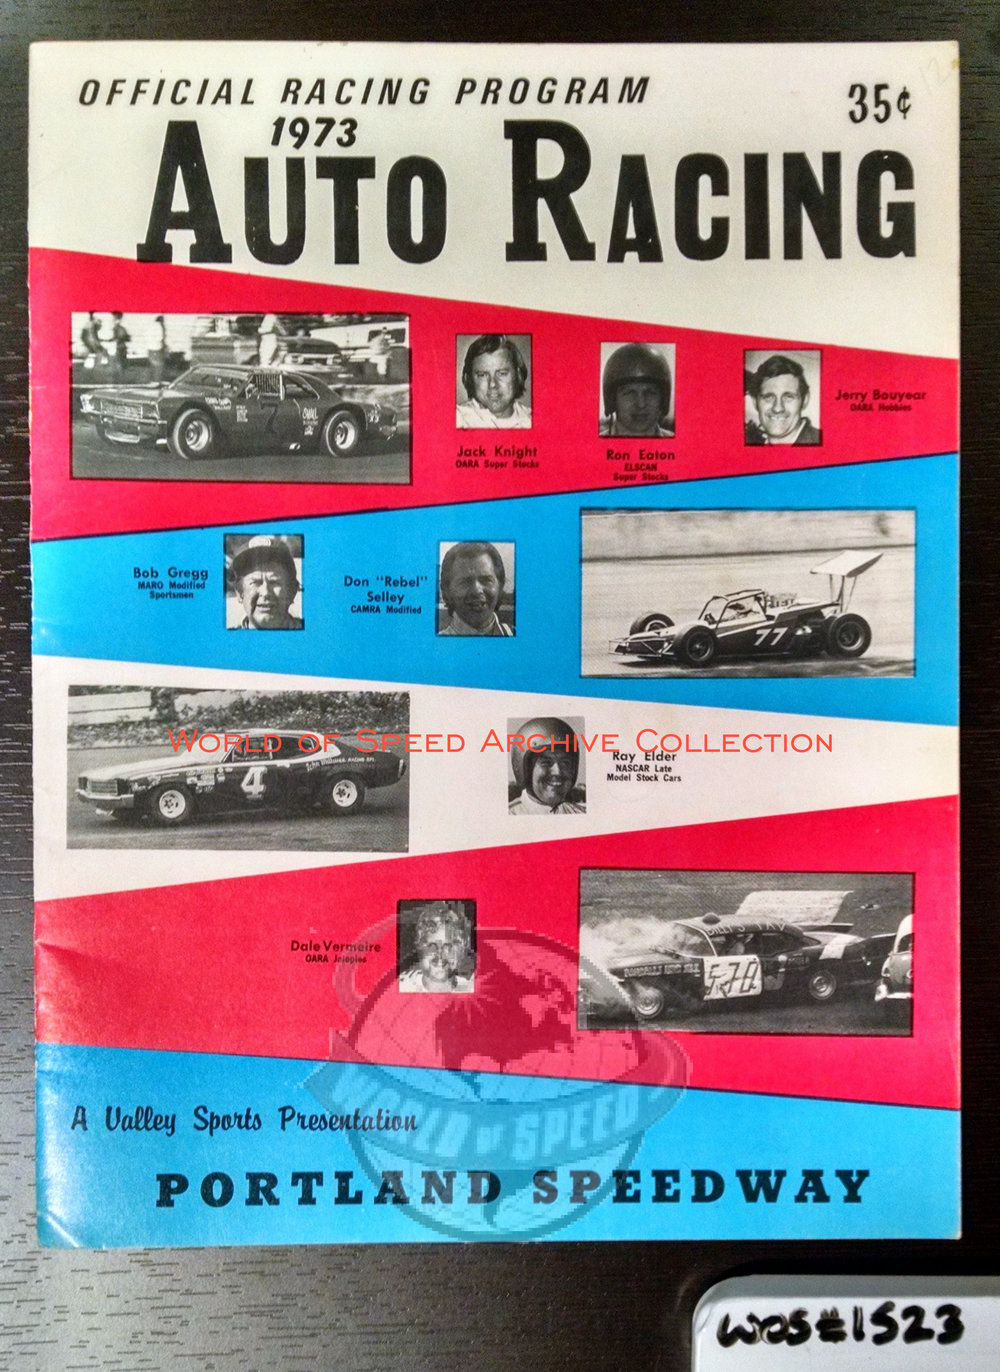 1973 program with images of famed PNW drivers of the time